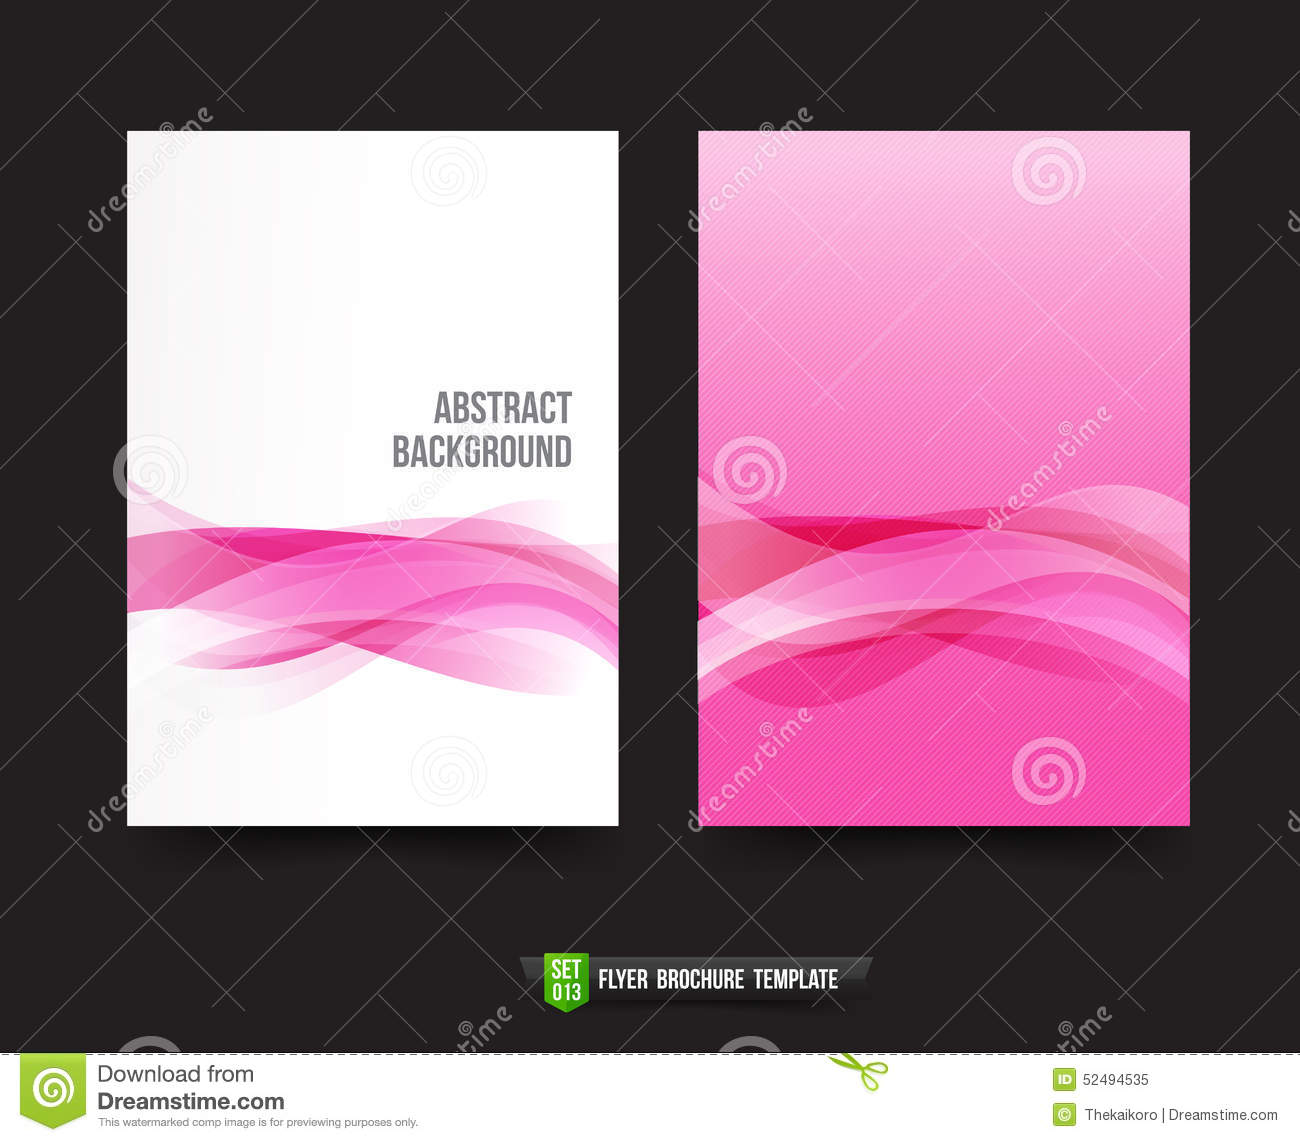 brochure background templates - flyer brochure background template 013 light pink curve